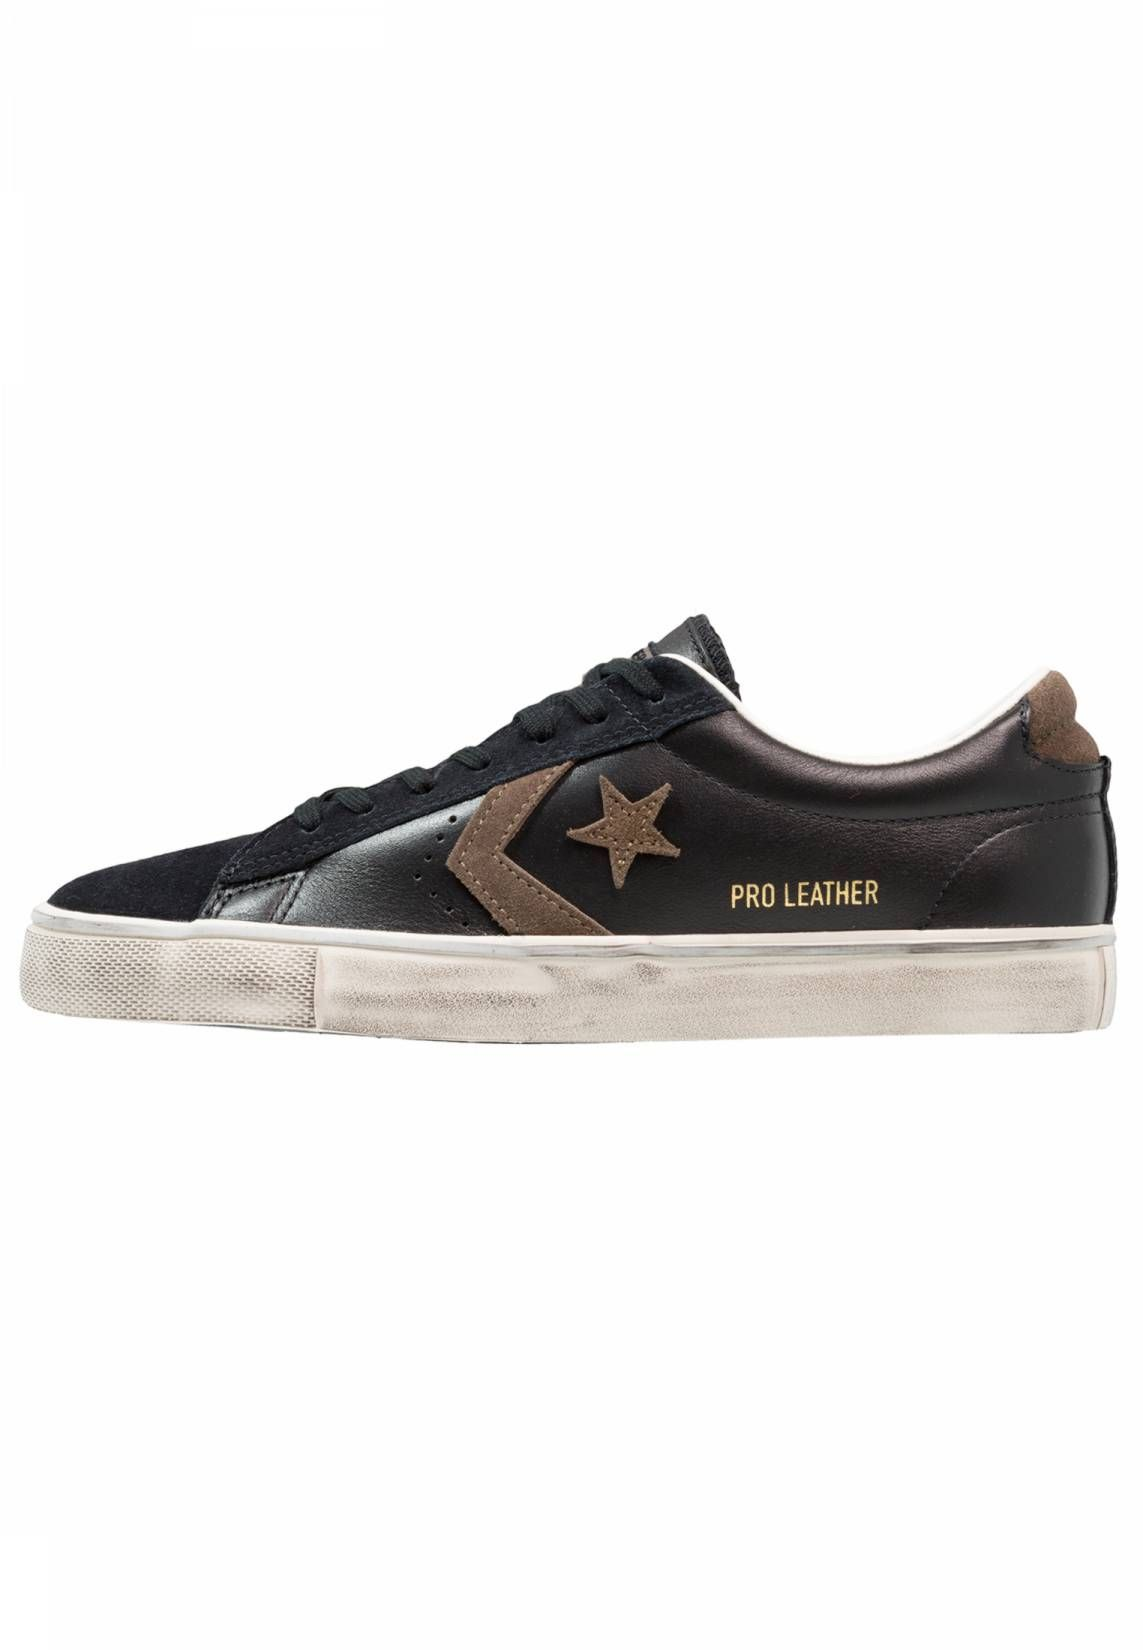 converse all star pro leather vulc uomo